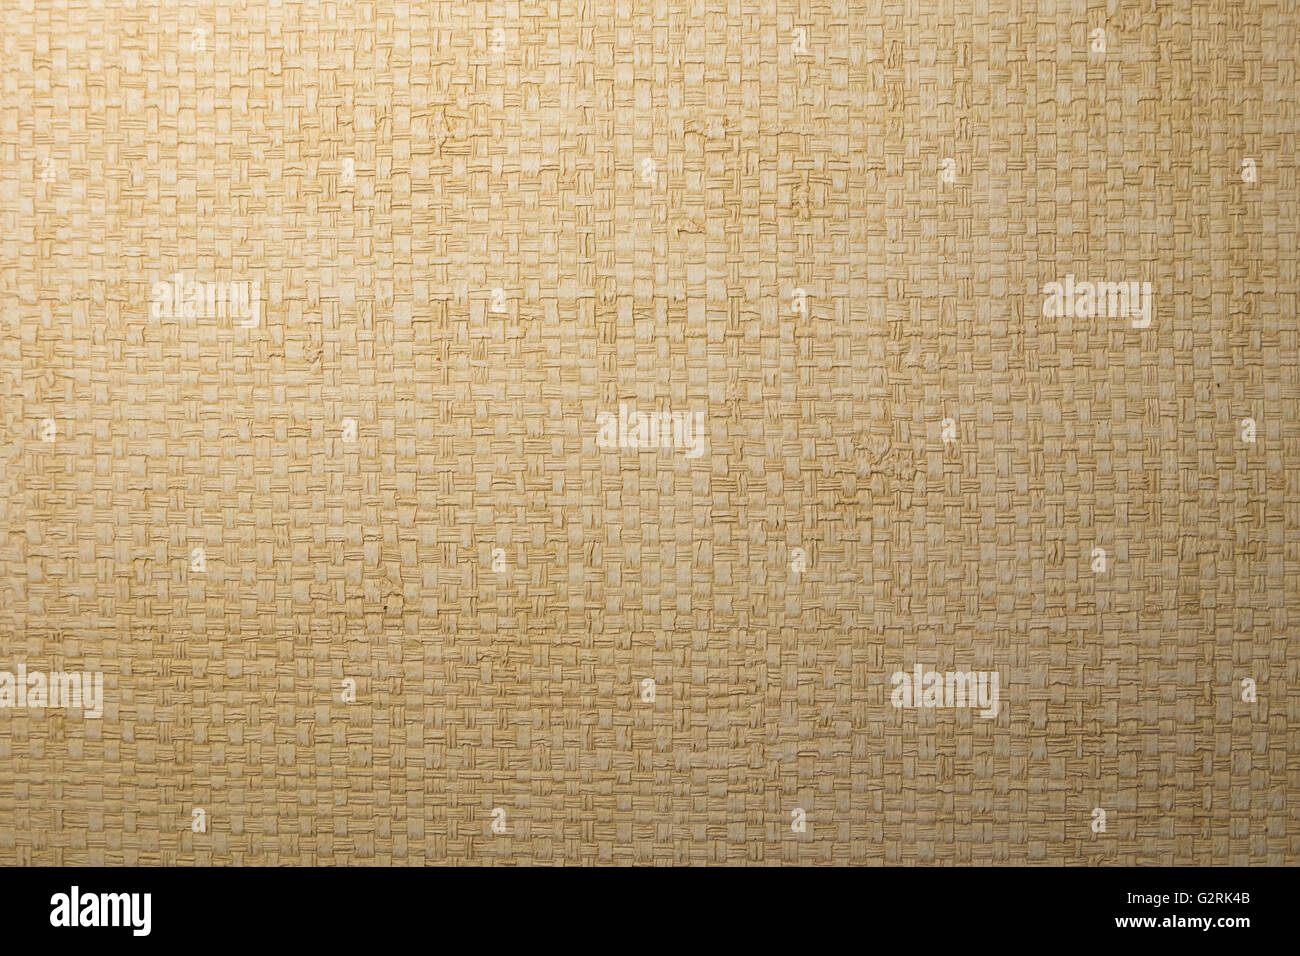 white local woven reed sedge papyrus texture wallpaper decoration. - Stock Image